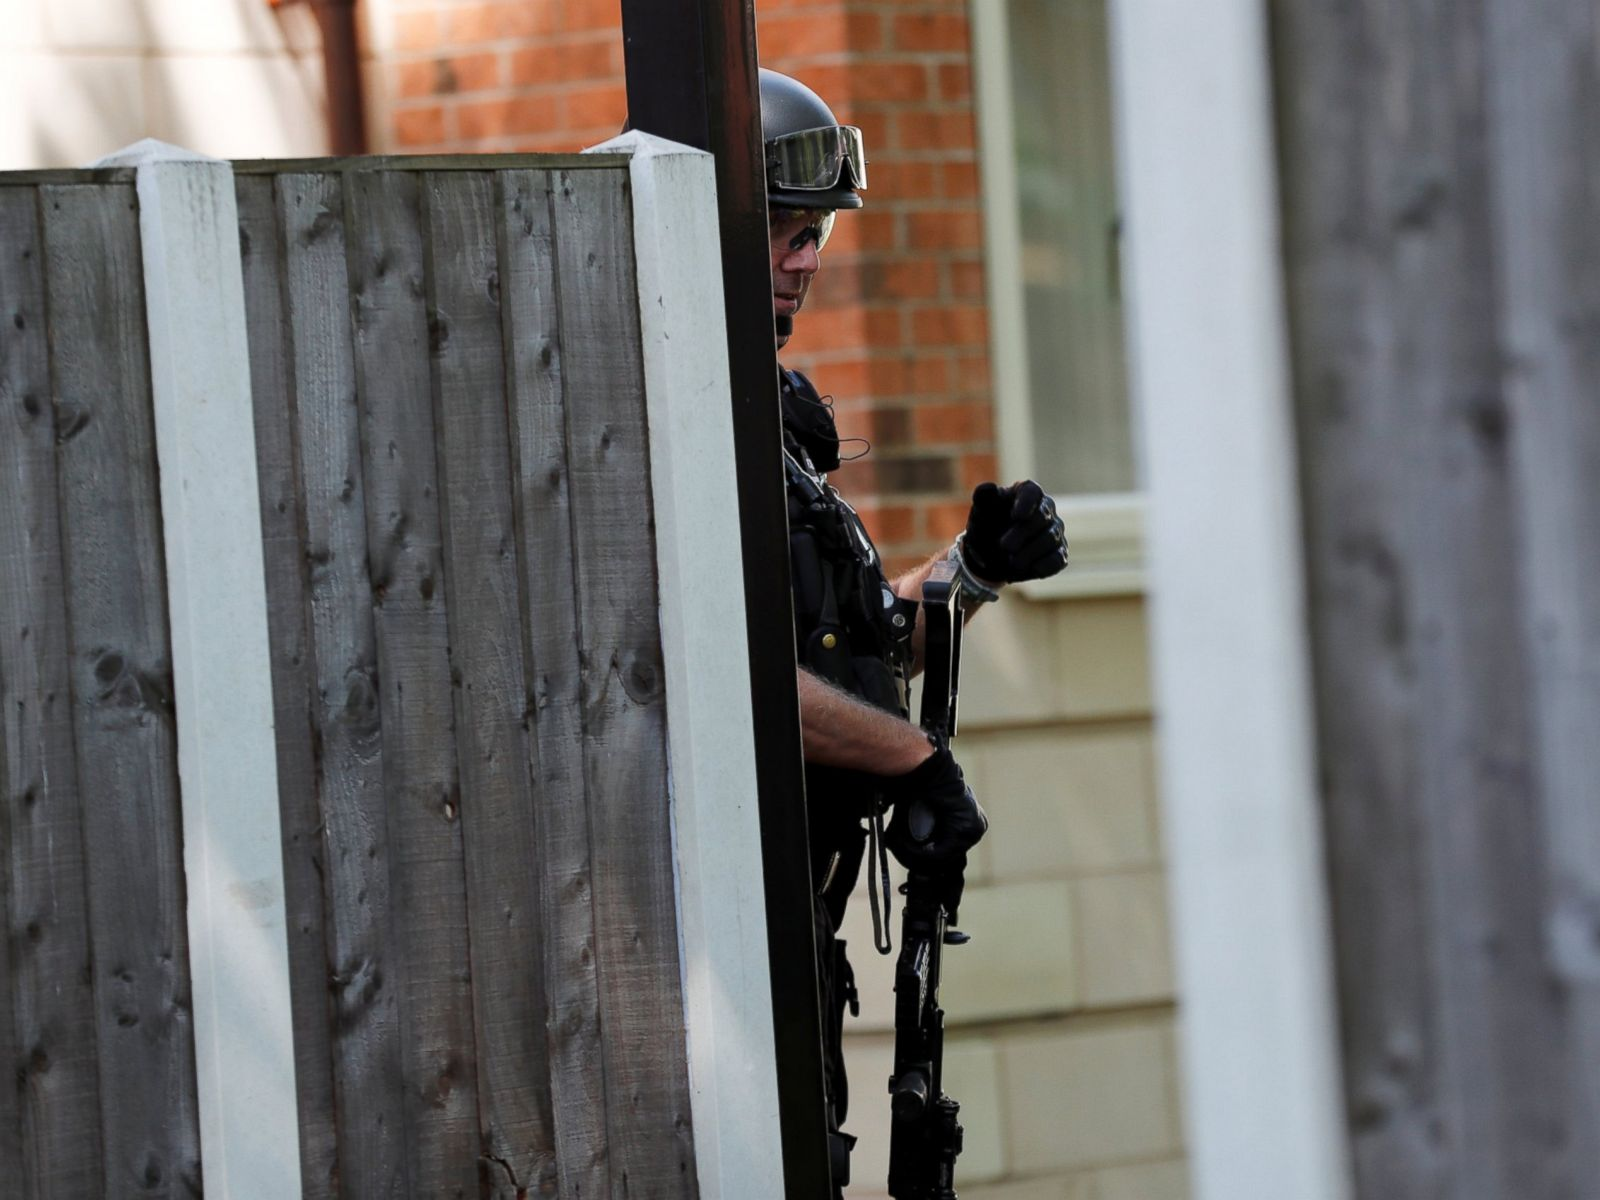 UK threat level raised to critical from severe, prime